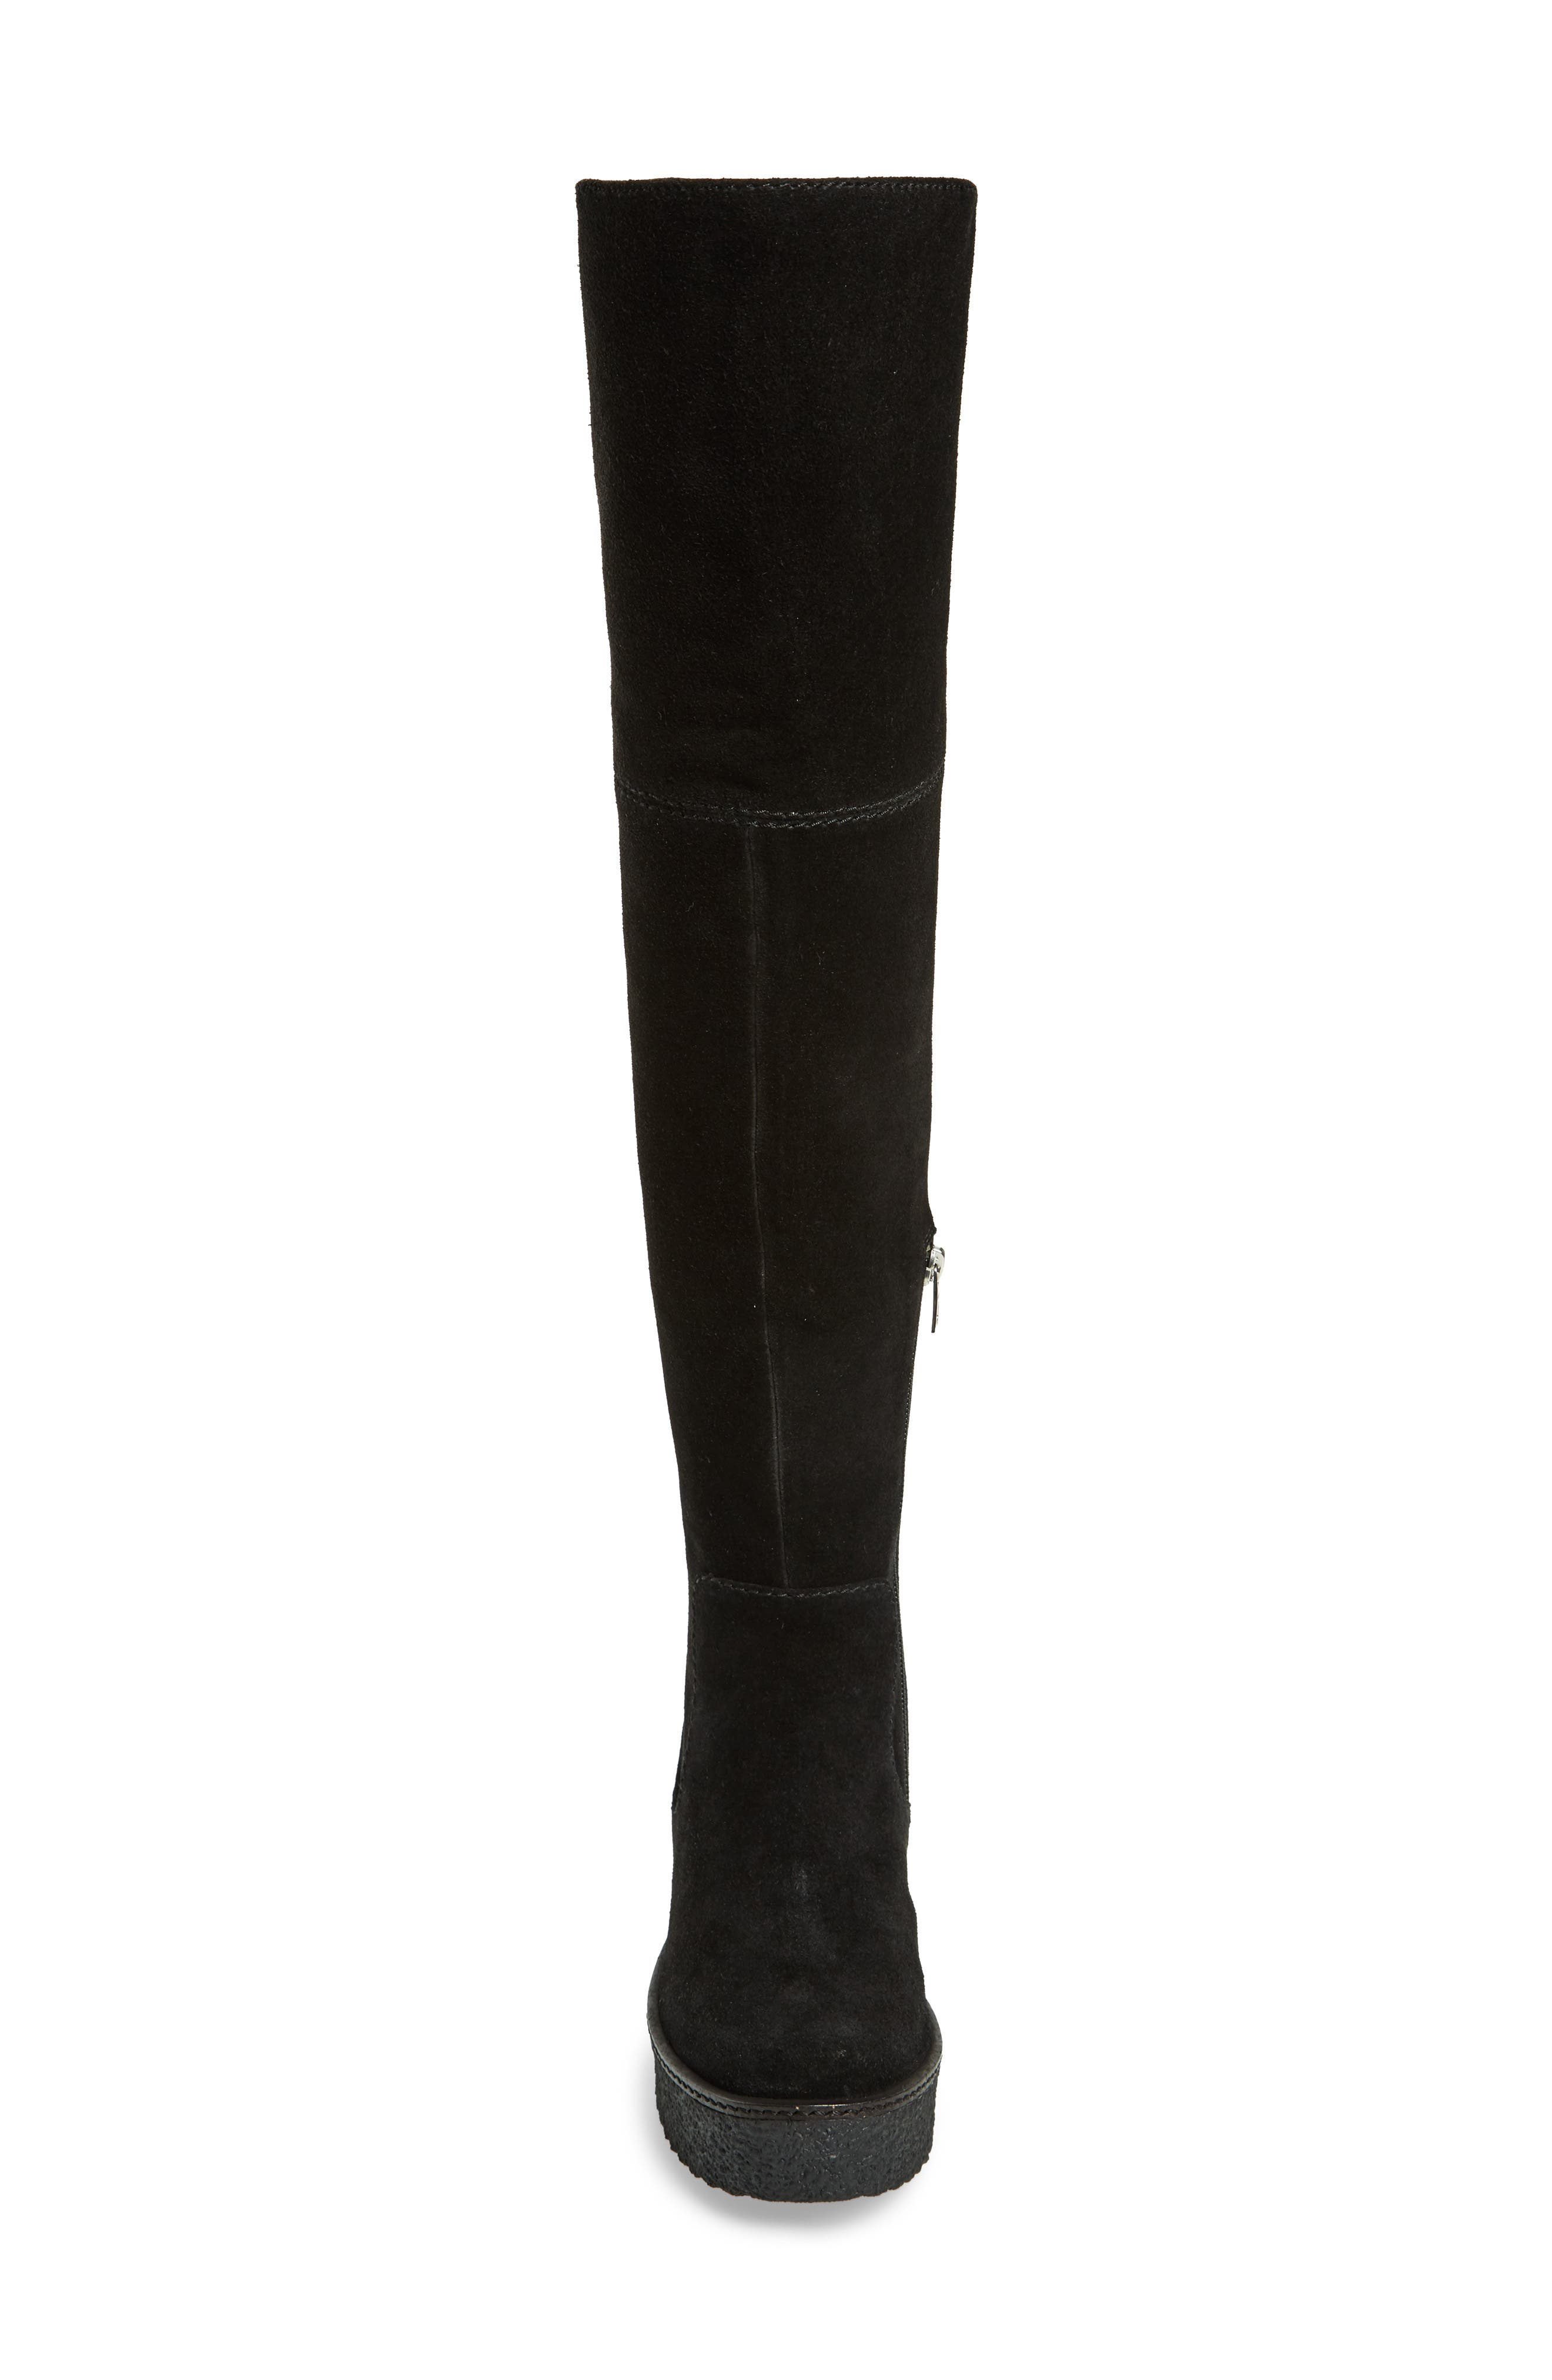 Tazza Over the Knee Boot,                             Alternate thumbnail 4, color,                             Black Suede